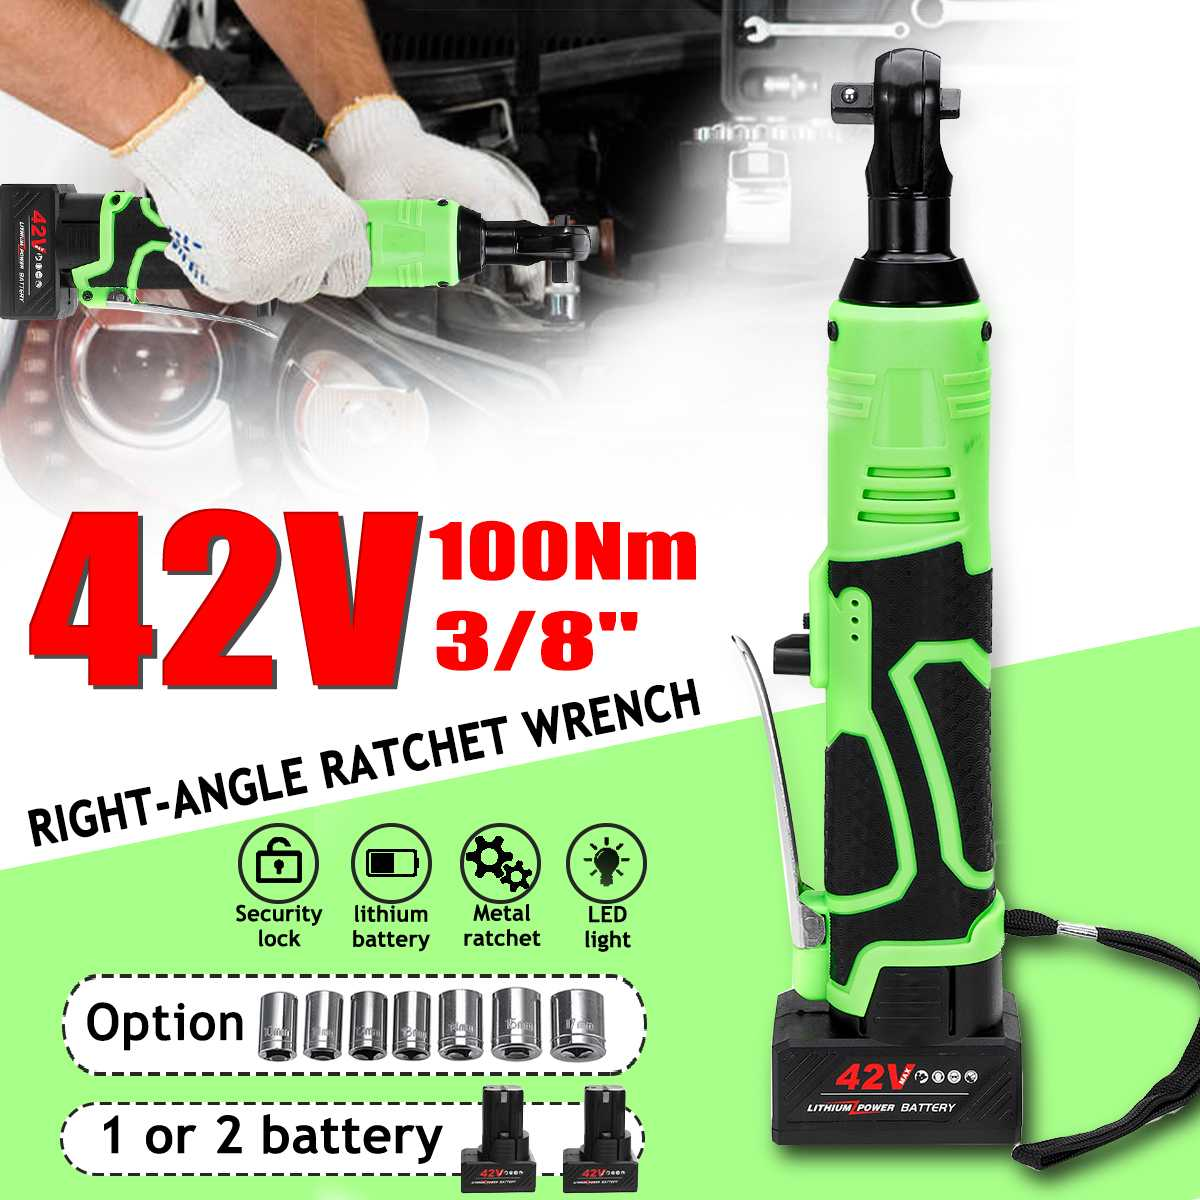 42V 3/8 Cordless Electric Ratchet Wrench Angle Drill Screwdriver Scaffolding 100NM Rechargeable Electric Spanner With 2 Battery